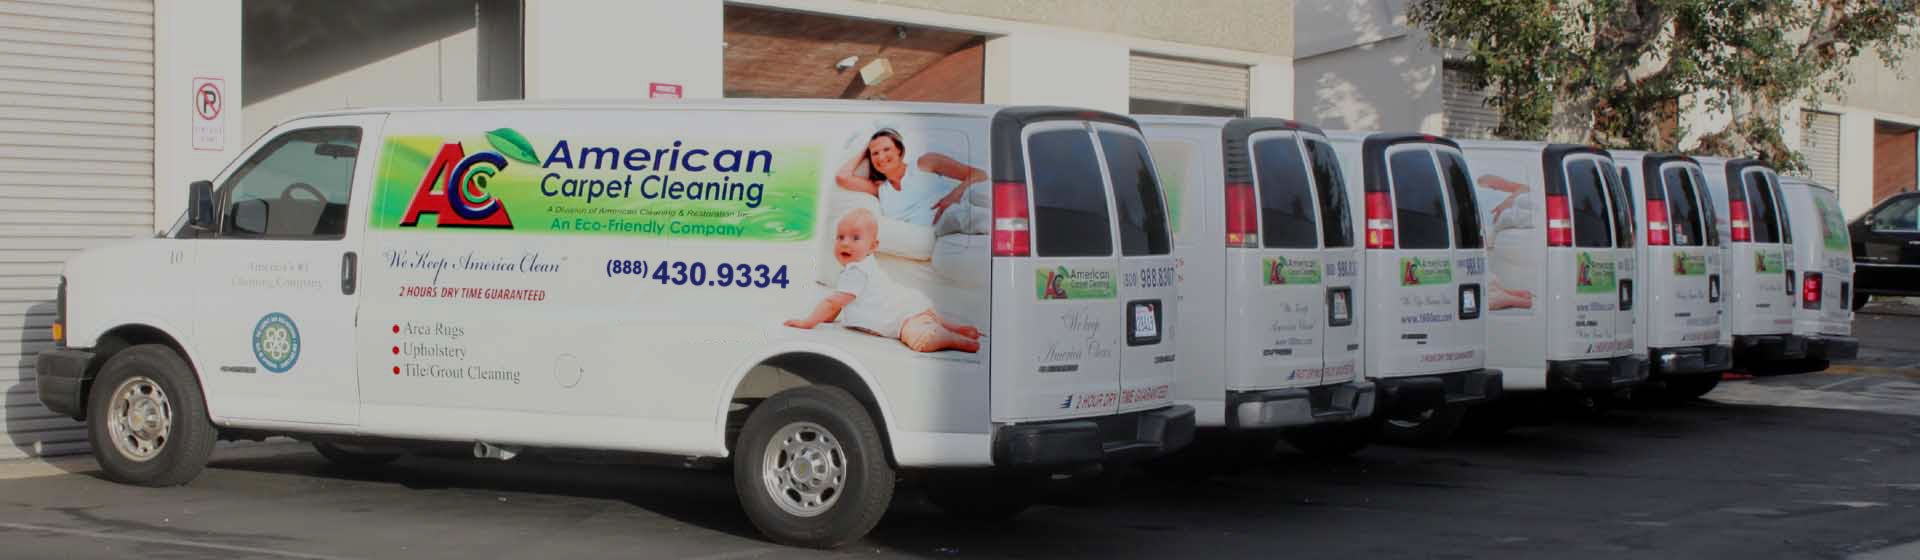 American Carpet Cleaning LA | Carpet Cleaning in Los Angeles | Carpet Cleaning in Bel Air, Ca | Carpet Cleaning in Pacific Palisades, Ca | Carpet Cleaning in Beverly Hills, Ca | Carpet Cleaning in Agoura Hills, Ca | Carpet Cleaning in Reseda, Ca | Carpet Cleaning in San Fernando Valley | Carpet Cleaning in Oak Park, Ca | Carpet Cleaning in Camarillo, Ca